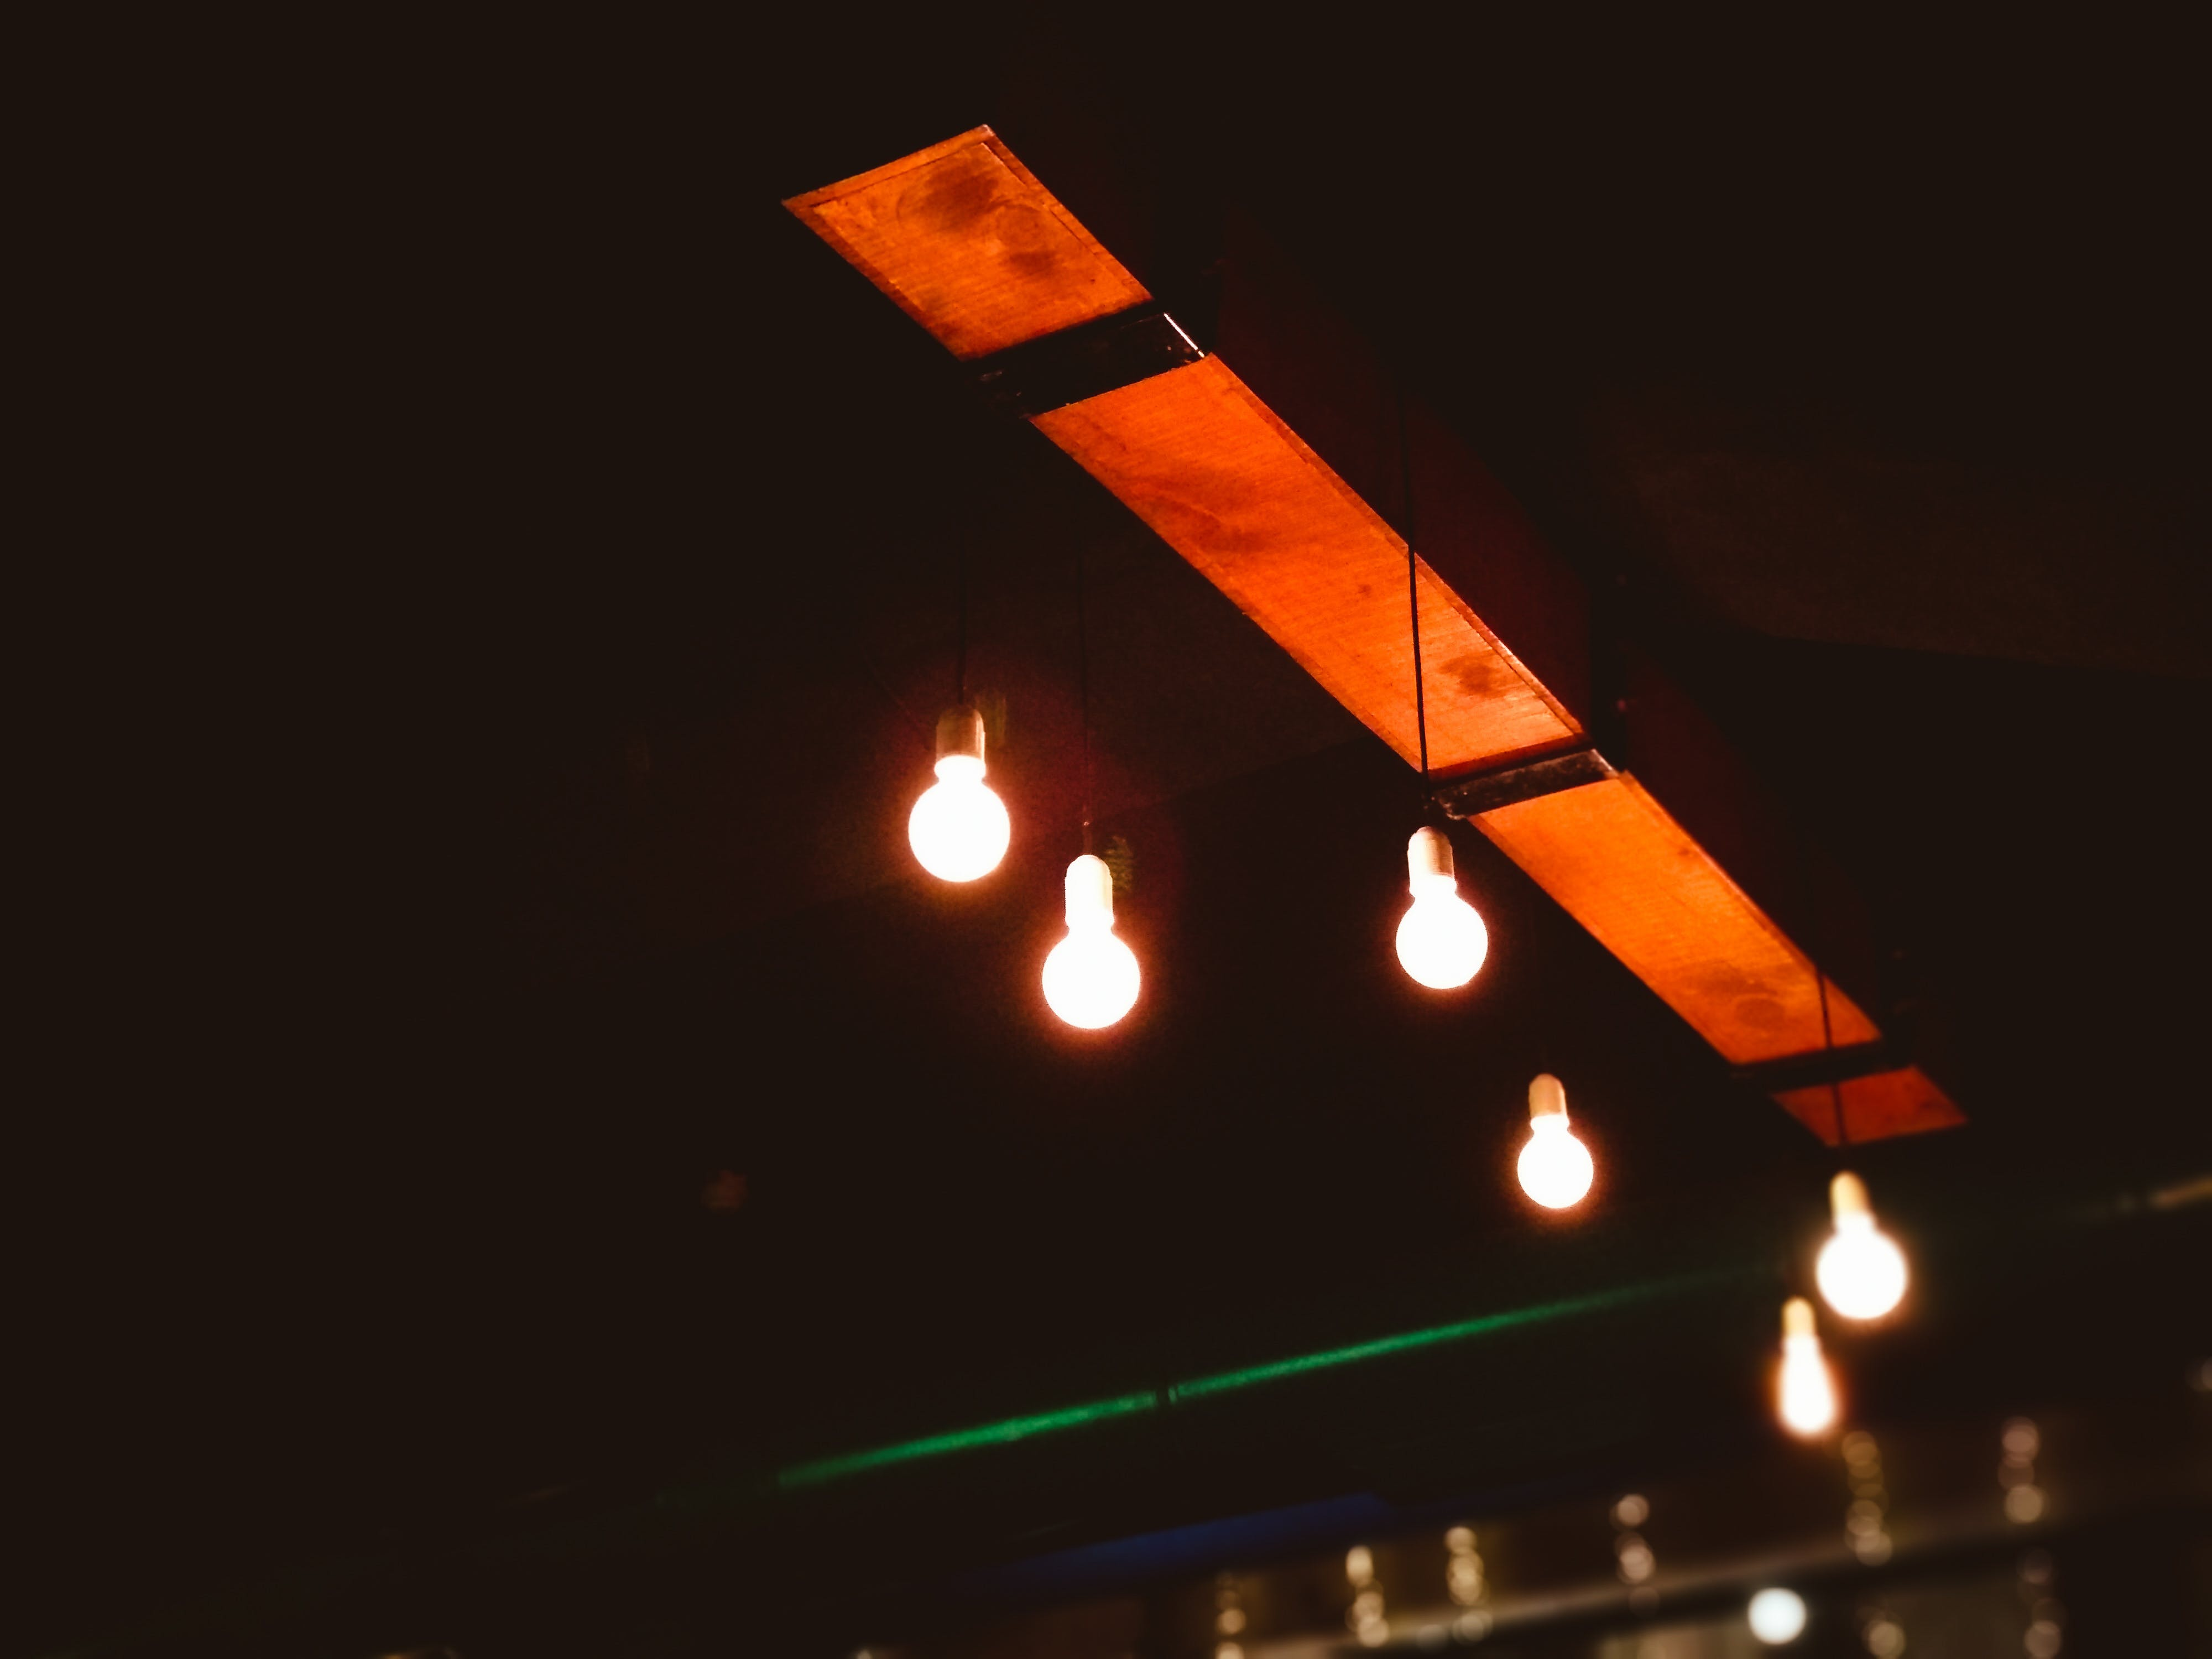 Free stock photo of asian food, bar cafe, blur, blurred background